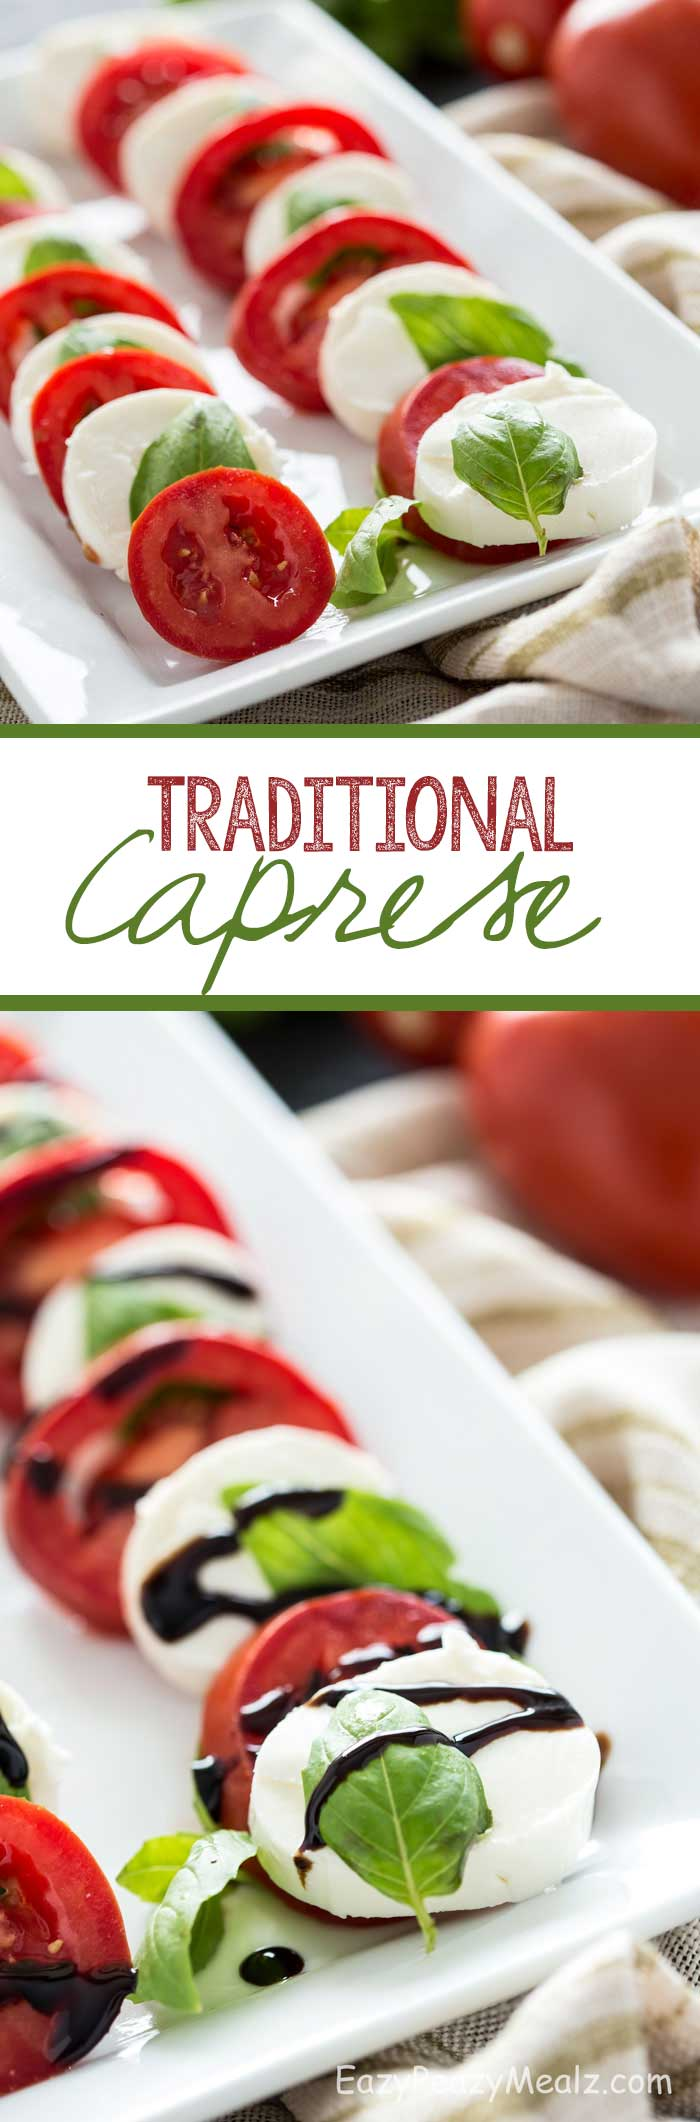 Traditional Caprese: Fresh tomatoes and basil, creamy mozzarella sliced cheese, and a balsamic glaze.